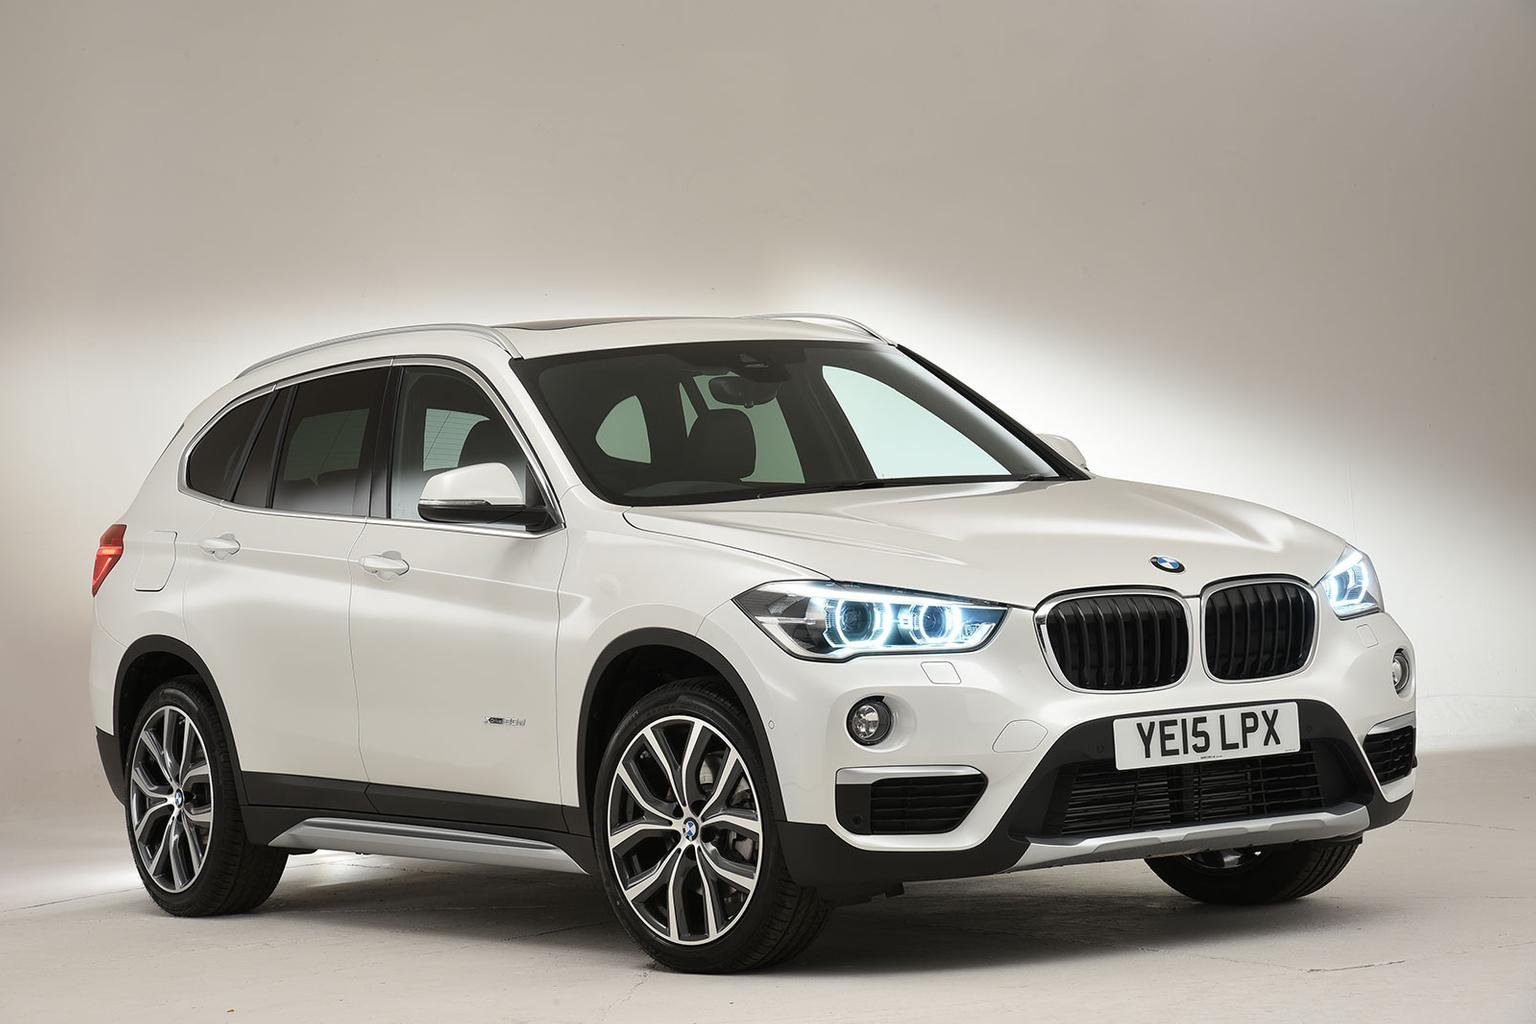 2015 BMW X1 - pricing, pictures, engines, specs